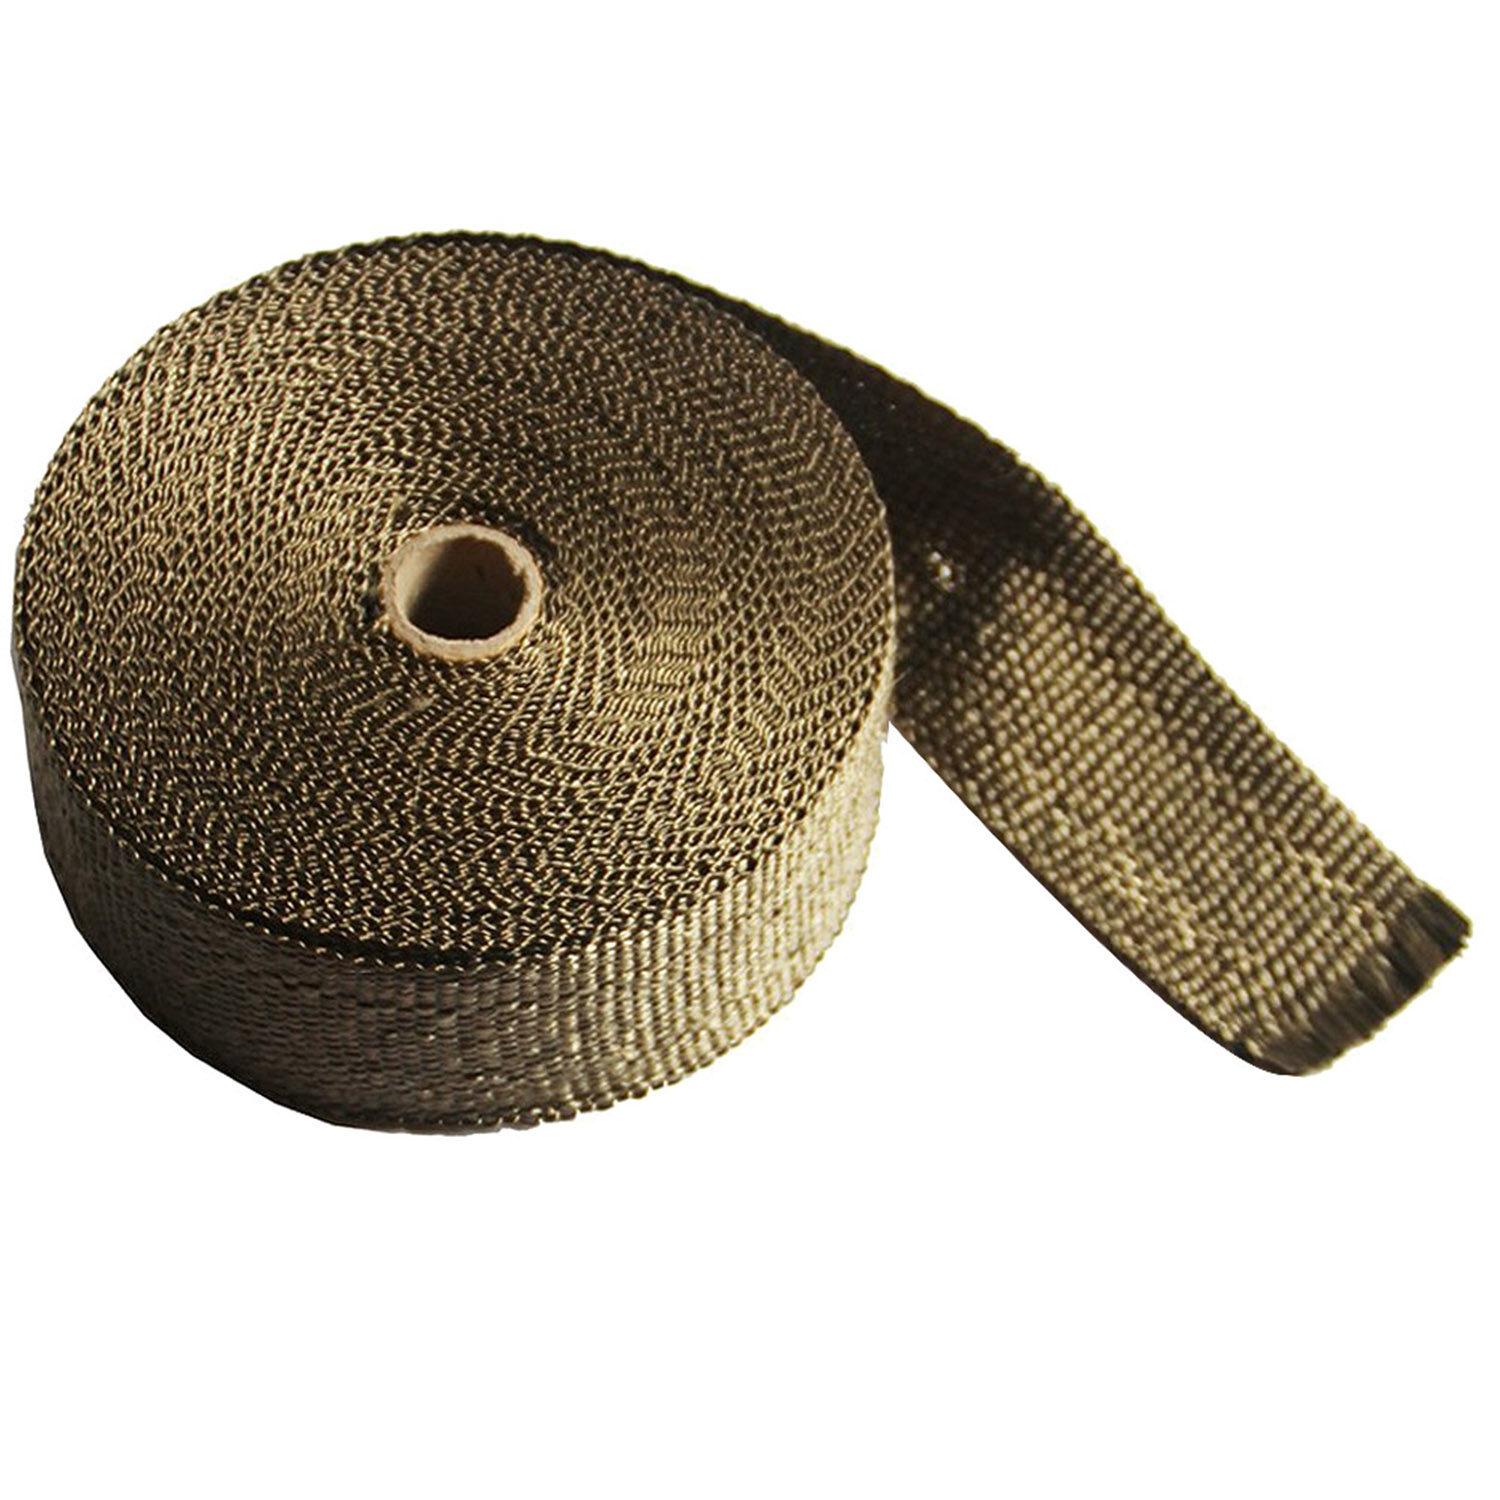 5cm x 10m Titanium Automotive Motorcycle Exhaust Heat Insulating Wrap Roll  Header Heat Shield Tape with 6 Stainless Ties